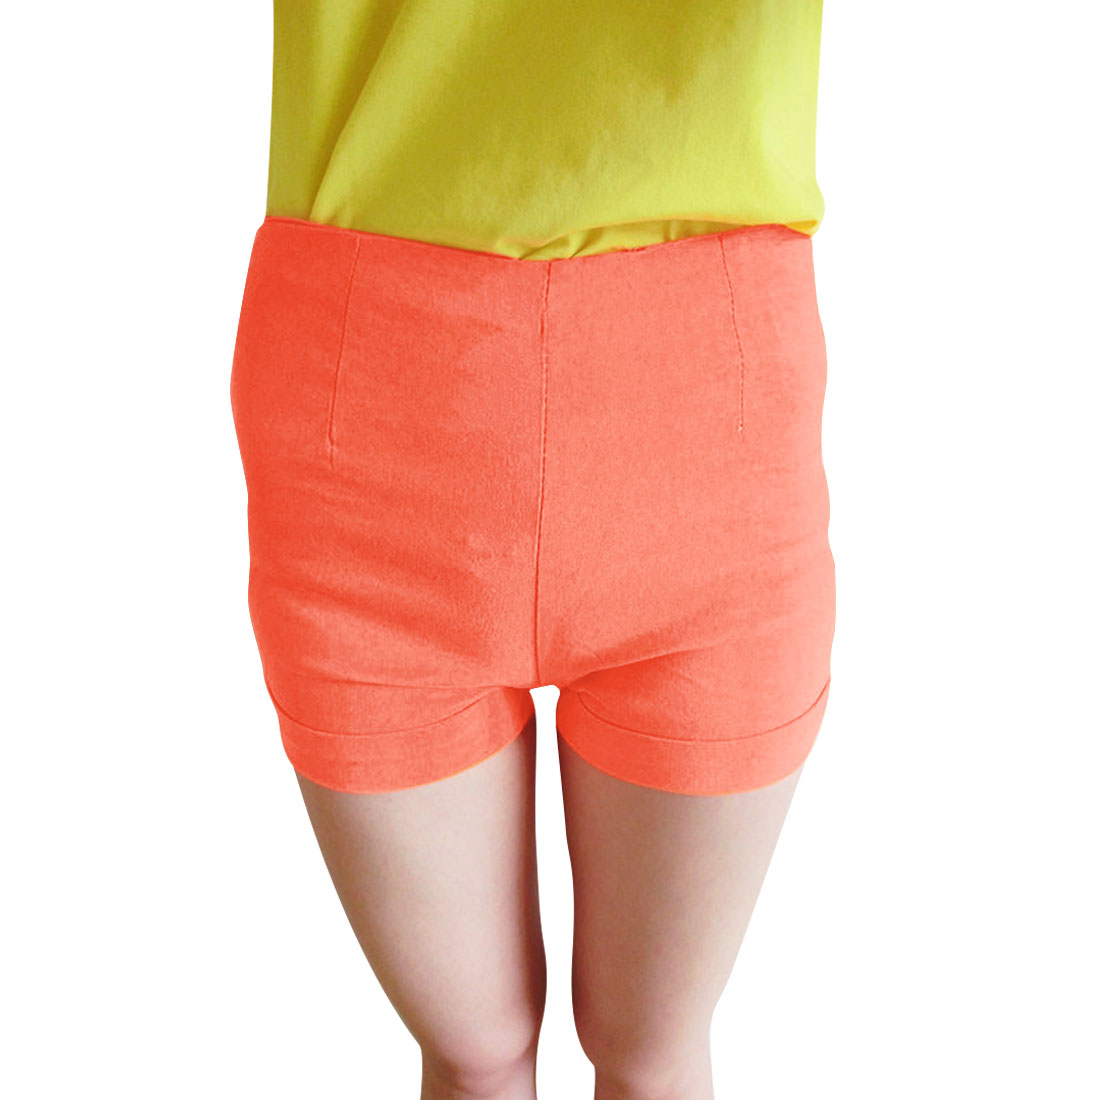 Zip Up Right Mock Hip Pockets Solid Color Casual Stretchy Short Pants Coral XS